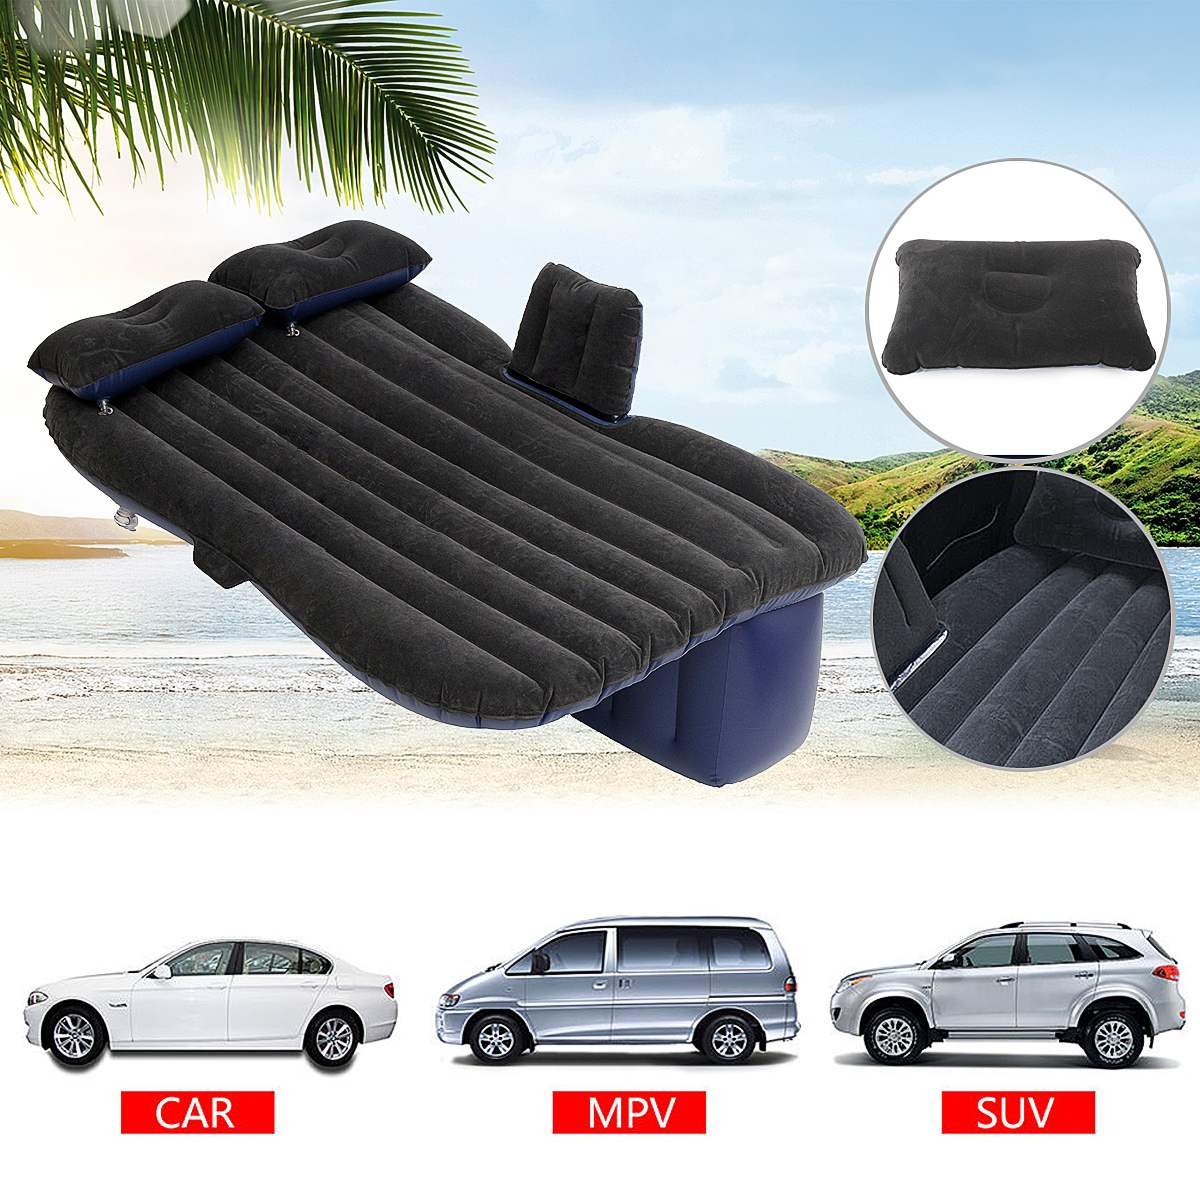 Good Quality Flocking Cloth Car Back Seat Cover Car Air Mattress Travel Bed Inflatable Mattress Air Bed Inflatable Car Bed large size durable car back seat cover car air mattress travel bed moisture proof inflatable mattress air bed for car interior